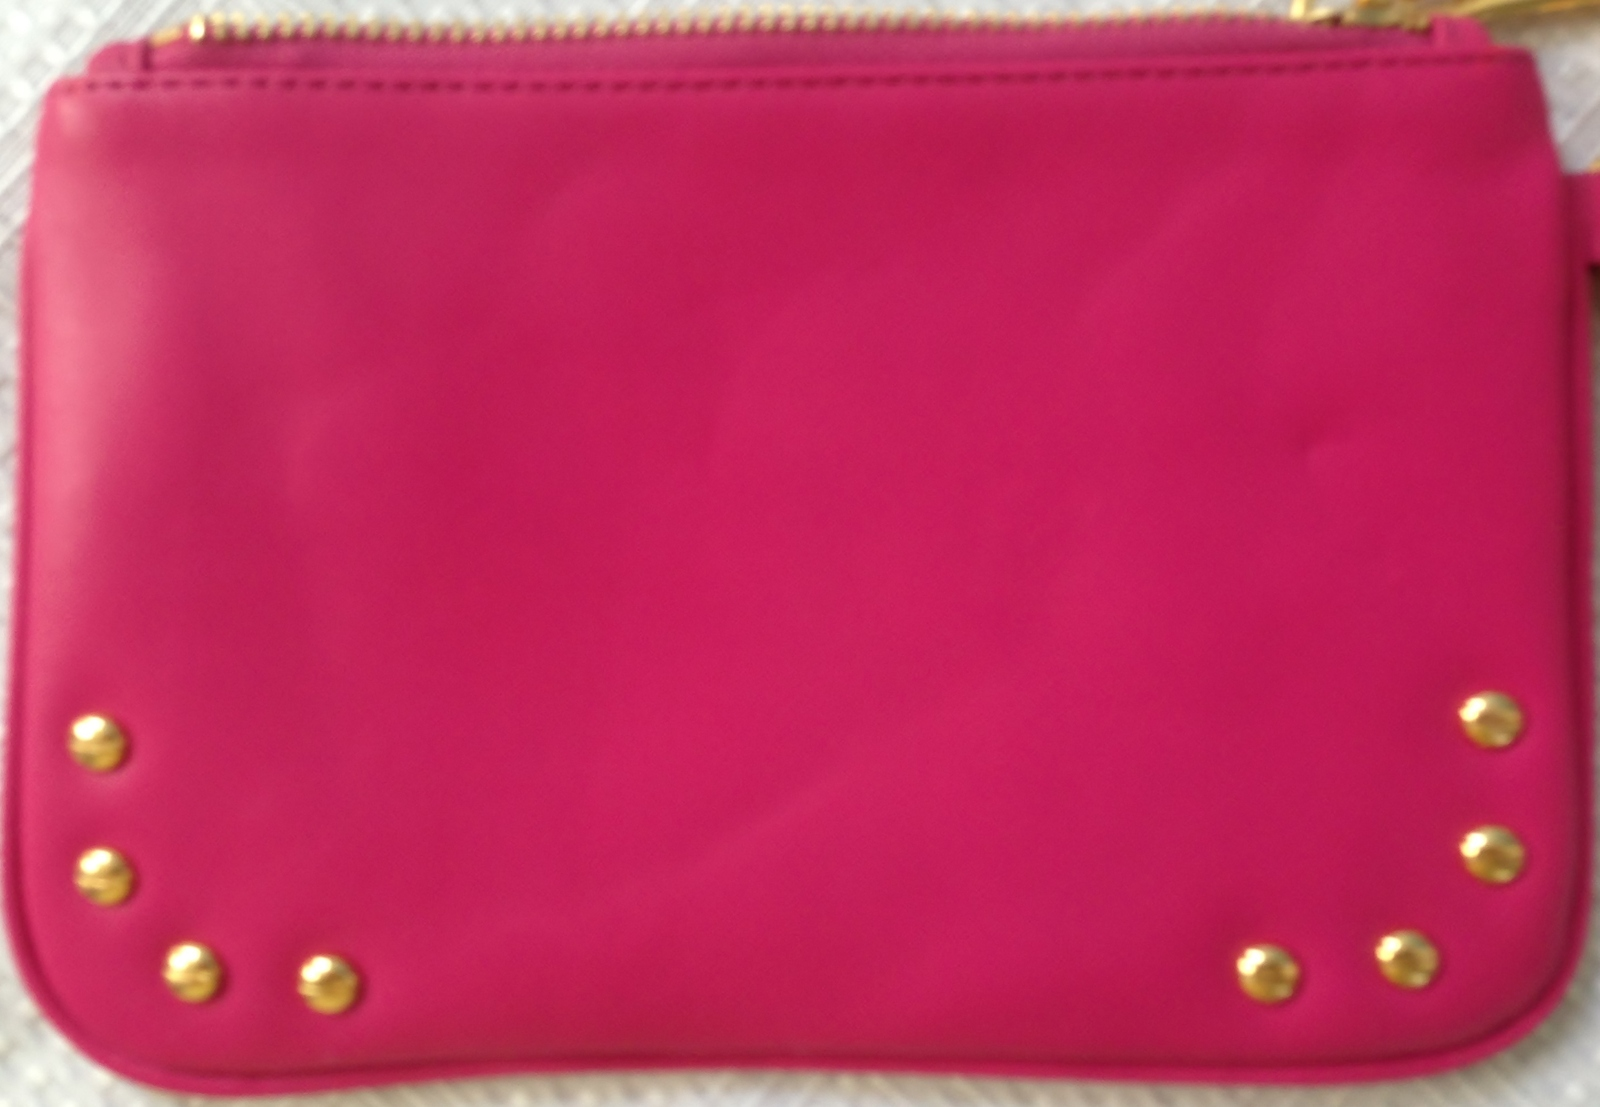 Torry  Burch Fashion Design Clutch Purse, Leather, Pink  image 9